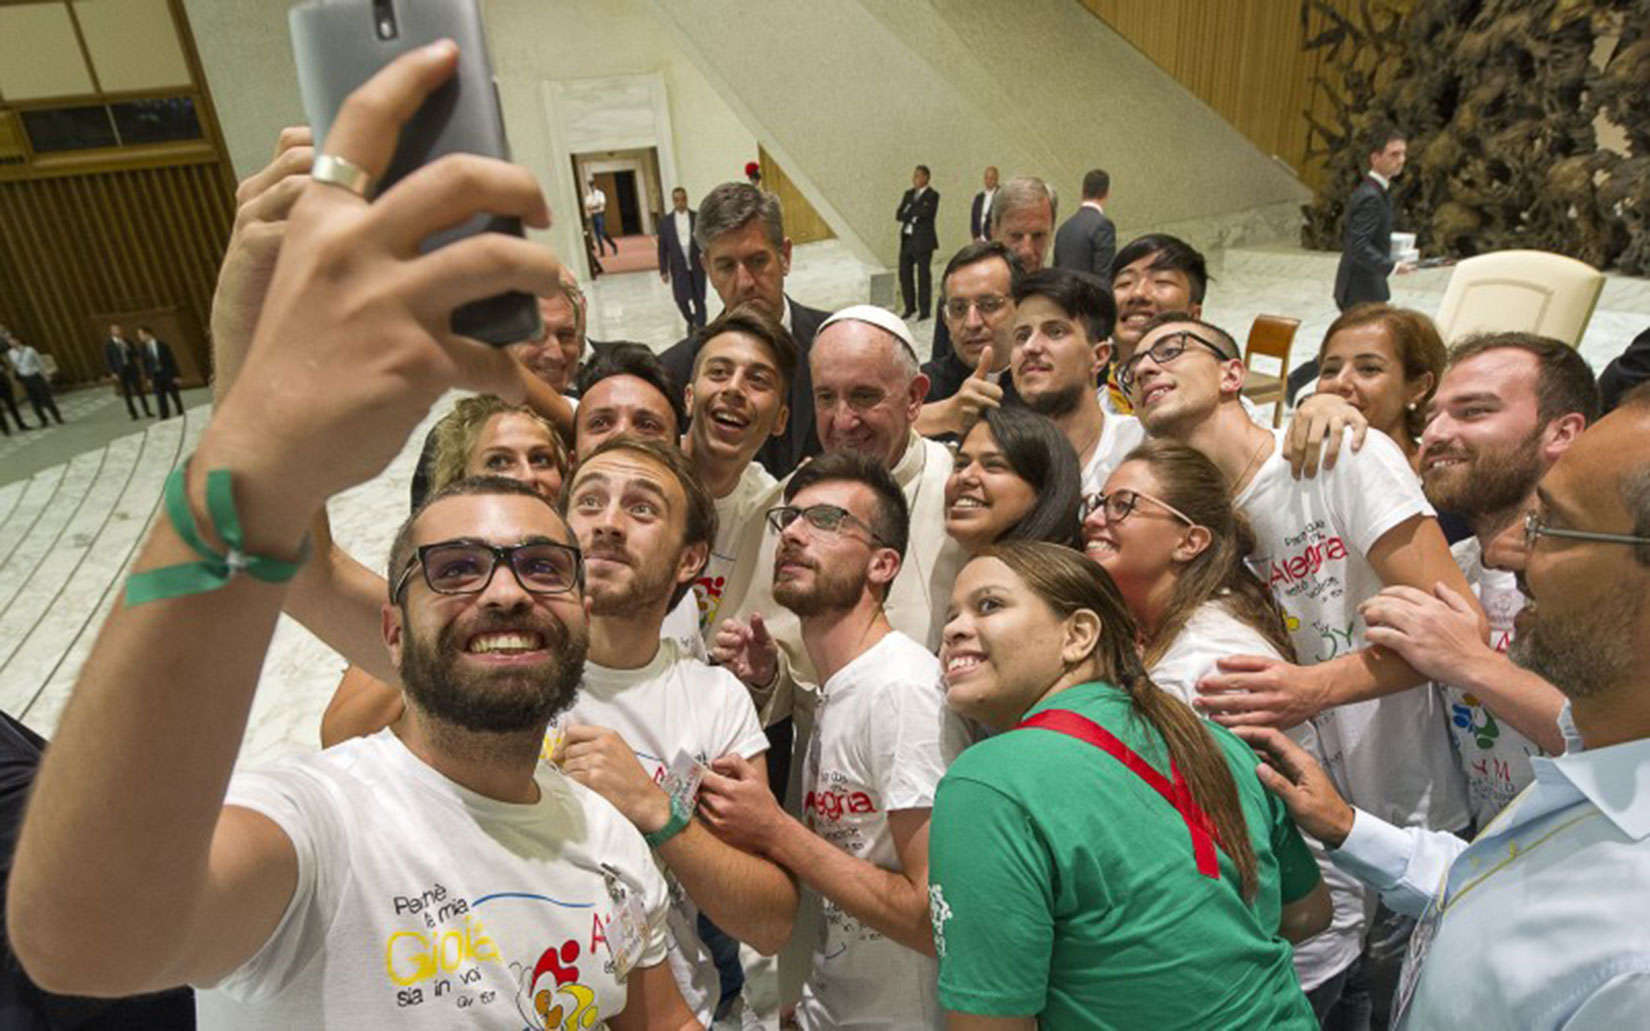 Pope Francis welcomes the presence of smartphones - but not at dinner.